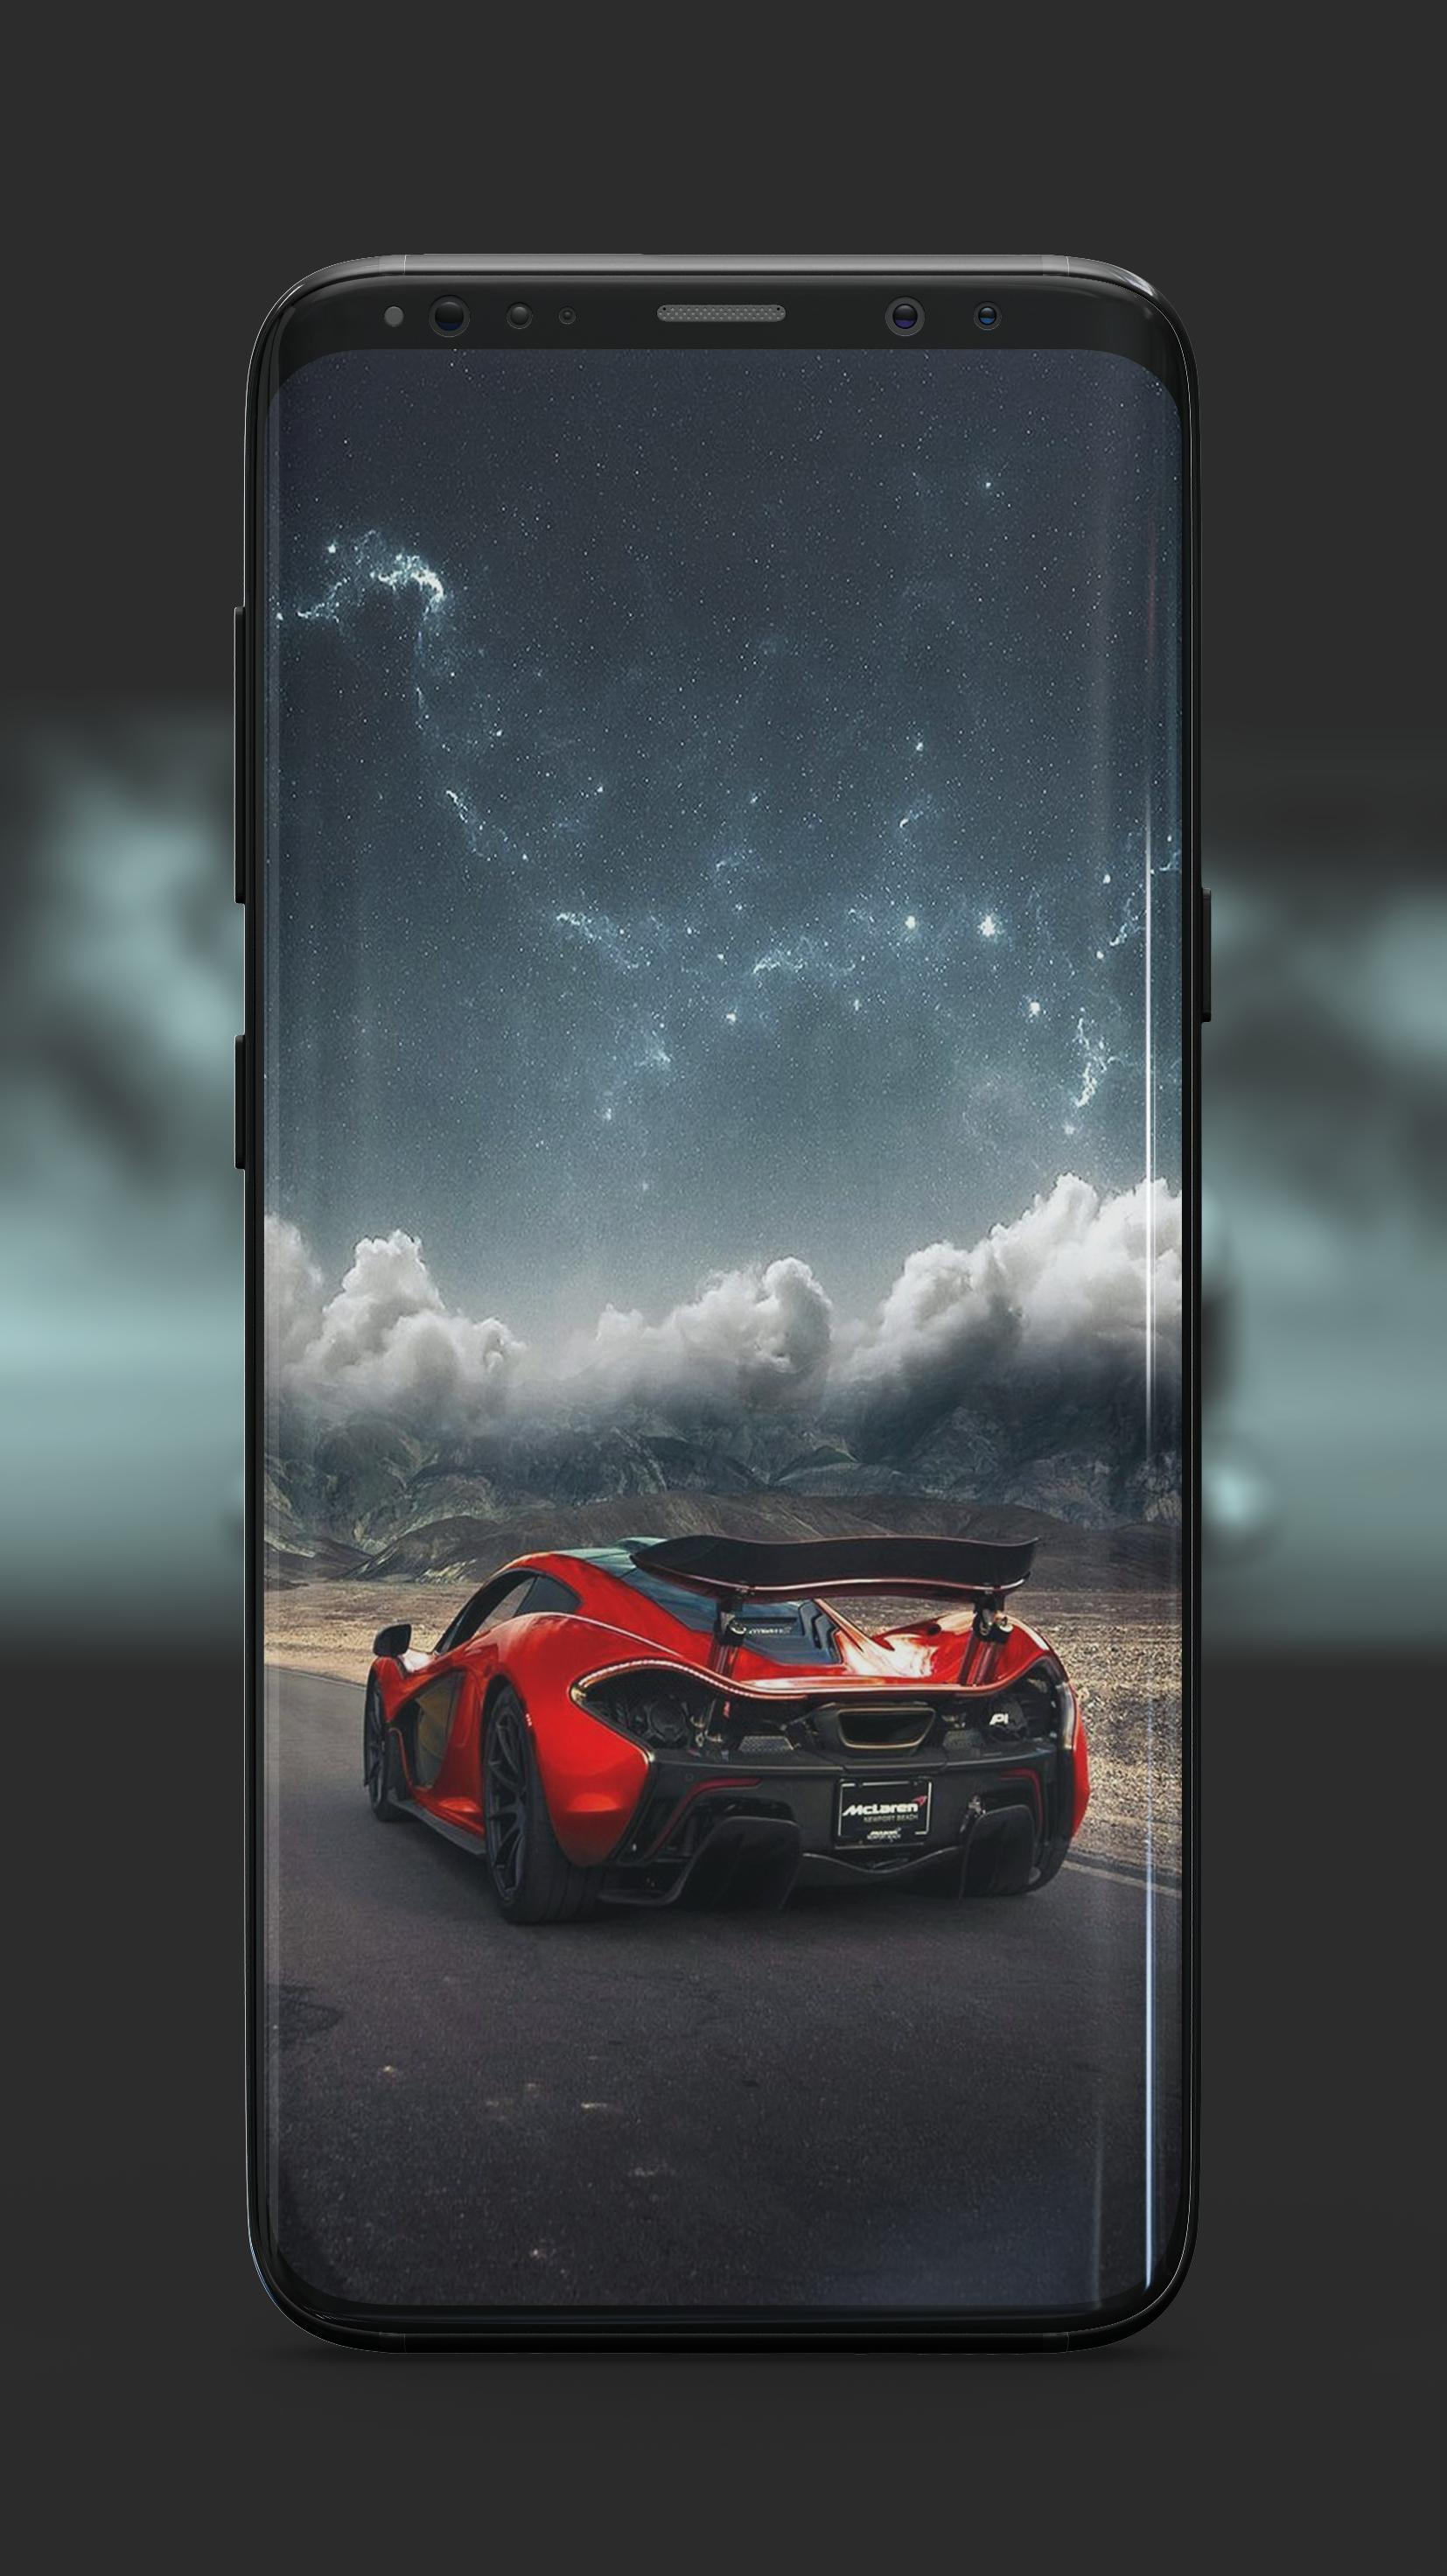 Sport Cars Wallpaper Hd For Android Apk Download